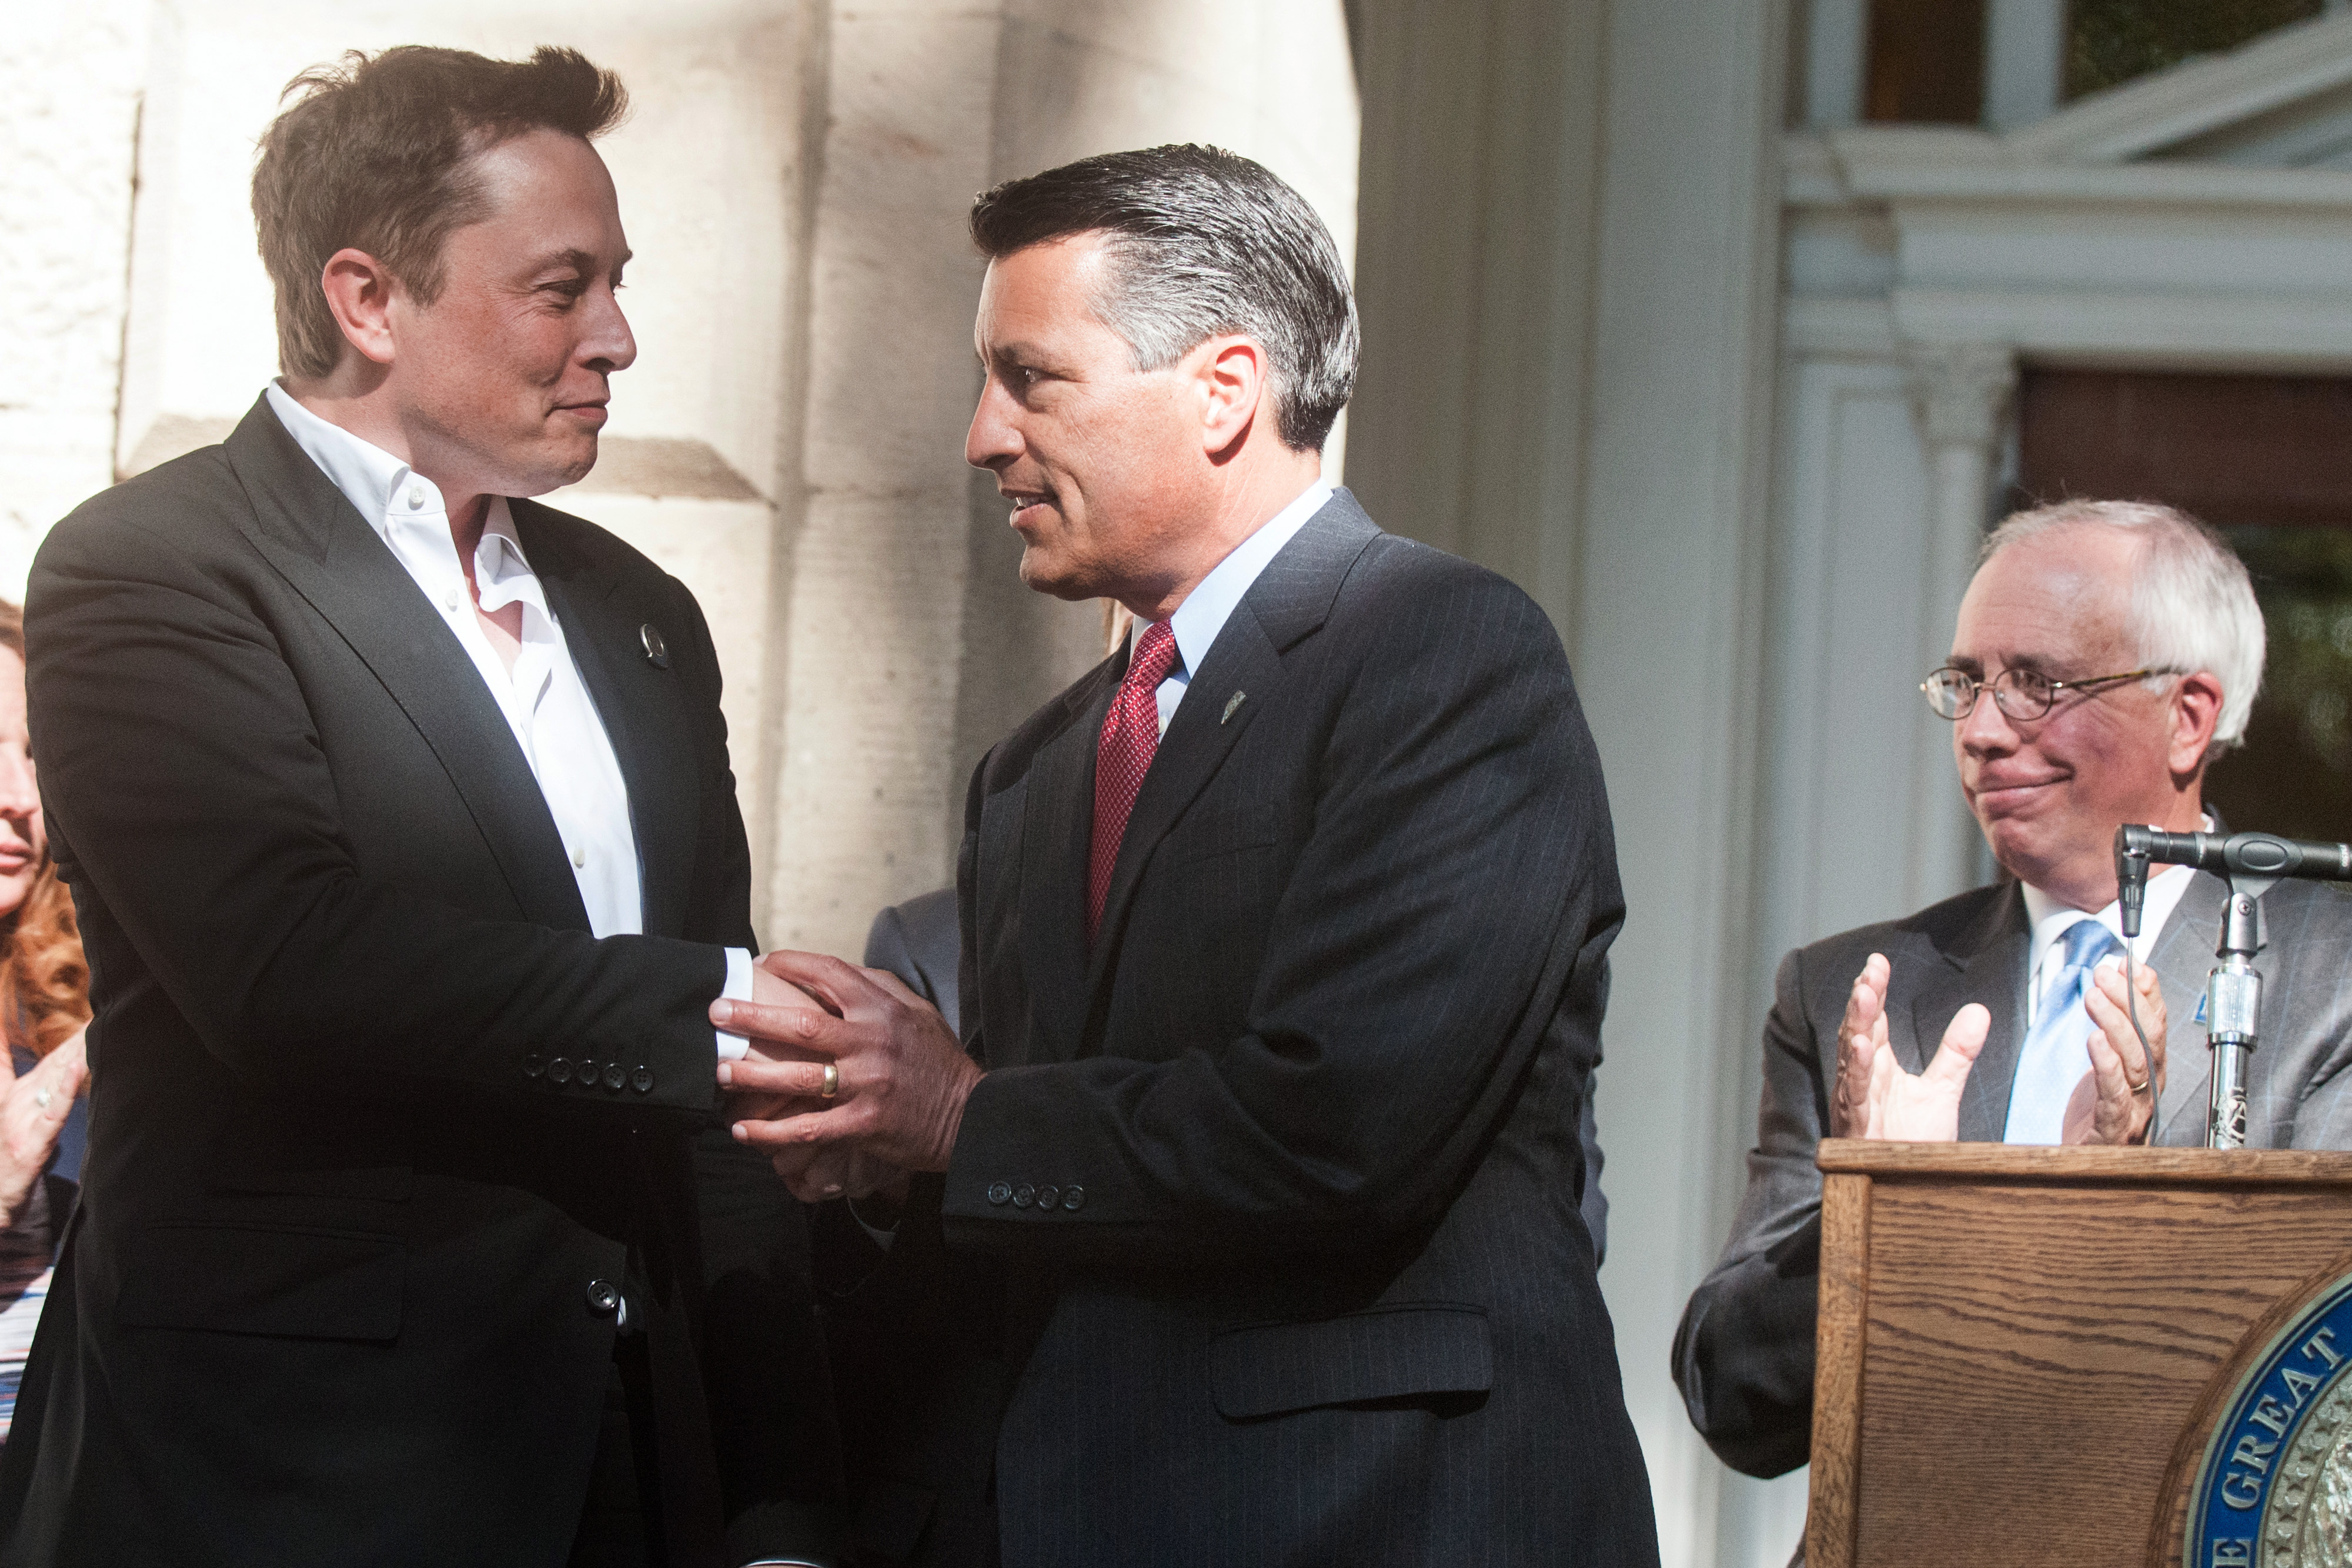 Brian Sandoval, Governor of Nevada, center, shakes hands with Elon Musk, co-founder and chief executive officer of Tesla Motors Inc., during a news conference at the Nevada State Capitol building in Carson City, Nevada, U.S., on Thursday, Sept. 4, 2014.